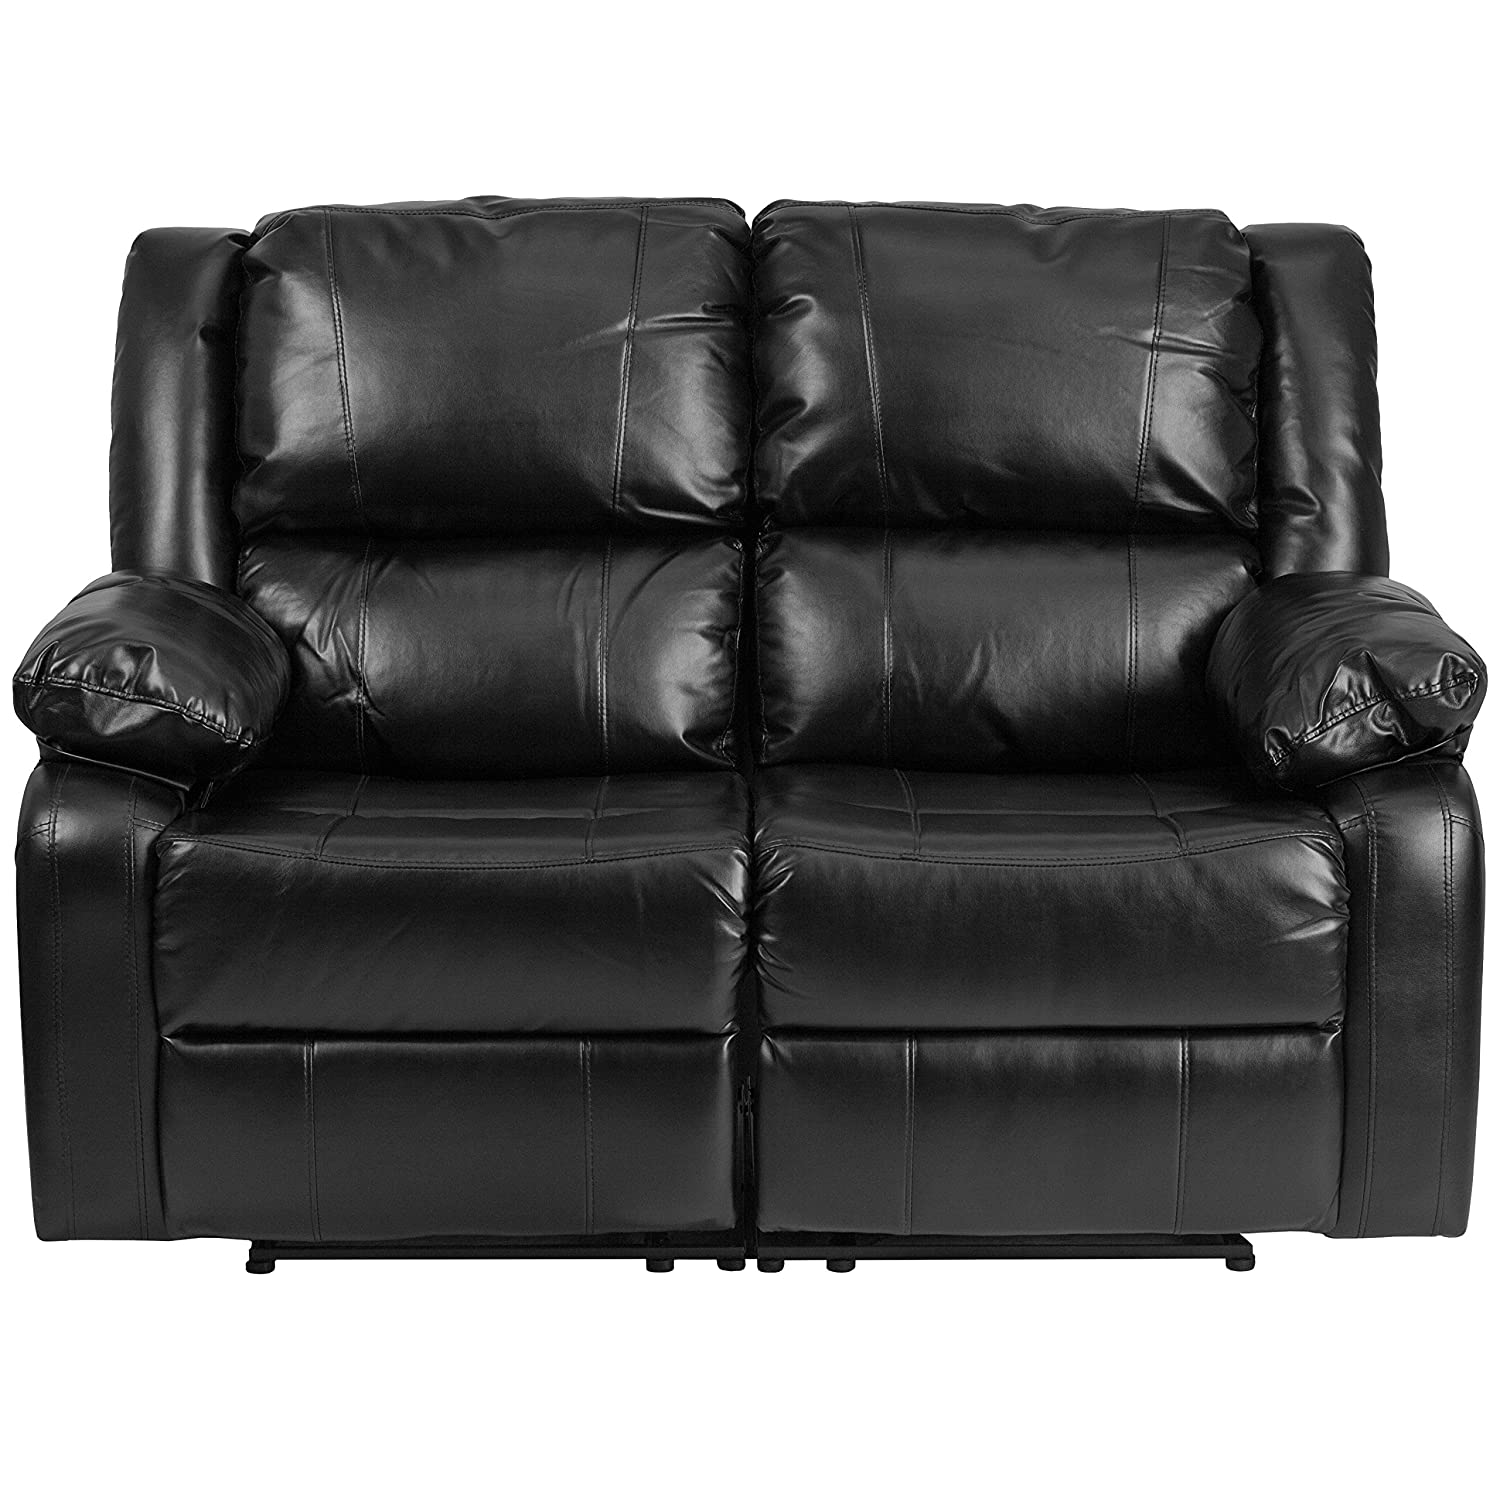 Amazon.com: Flash Furniture Harmony Series Black Leather Loveseat With Two  Built In Recliners: Kitchen U0026 Dining